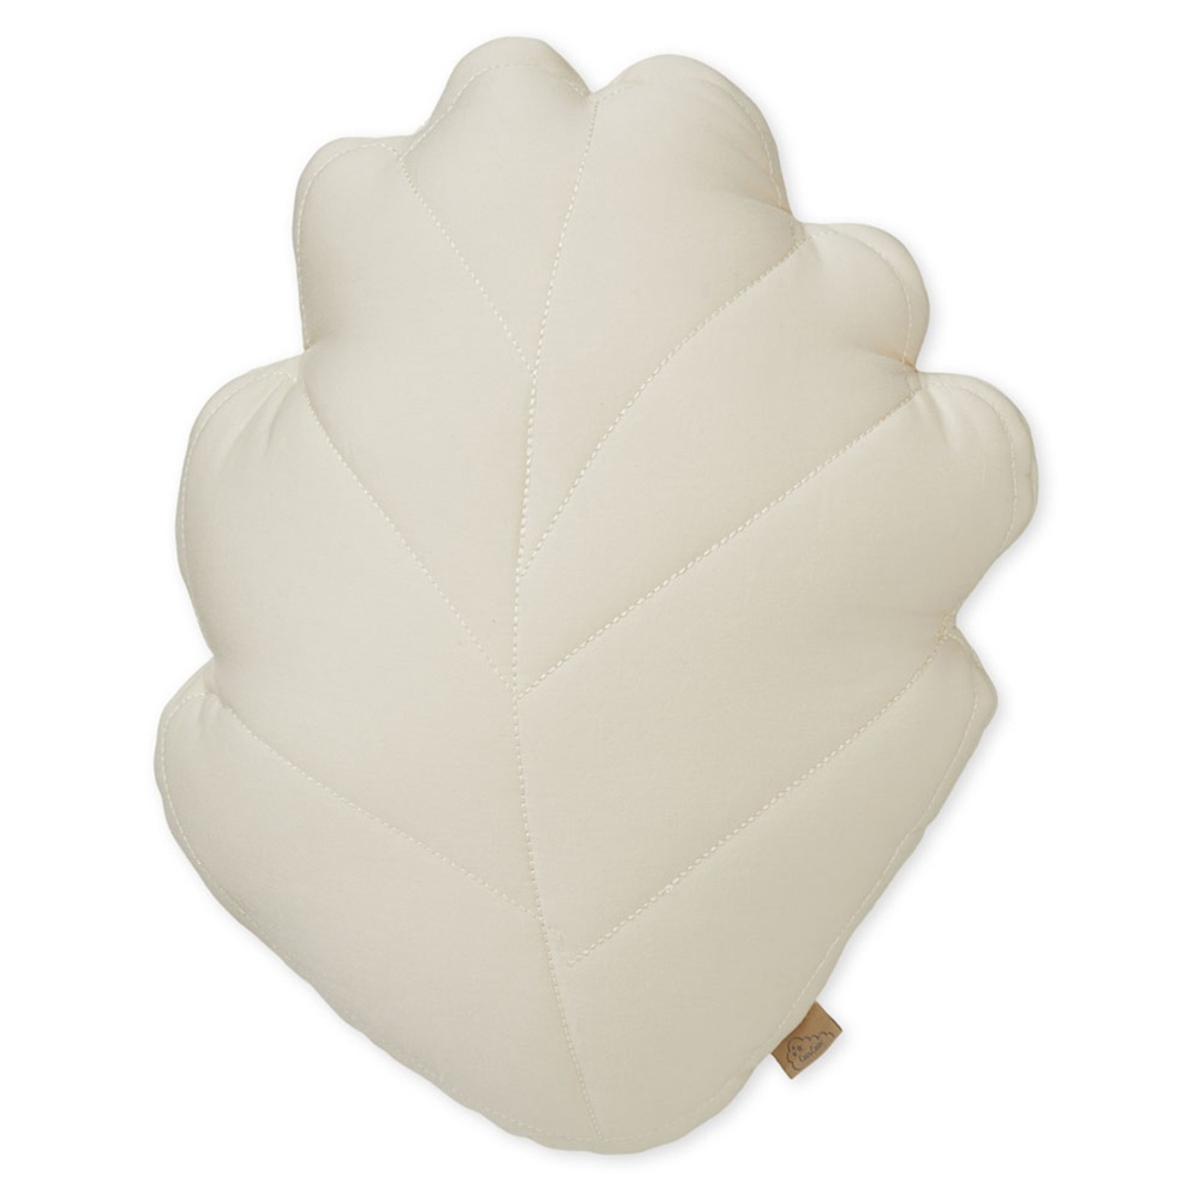 Coussin Coussin Feuille - Light Sand Coussin Feuille - Light Sand